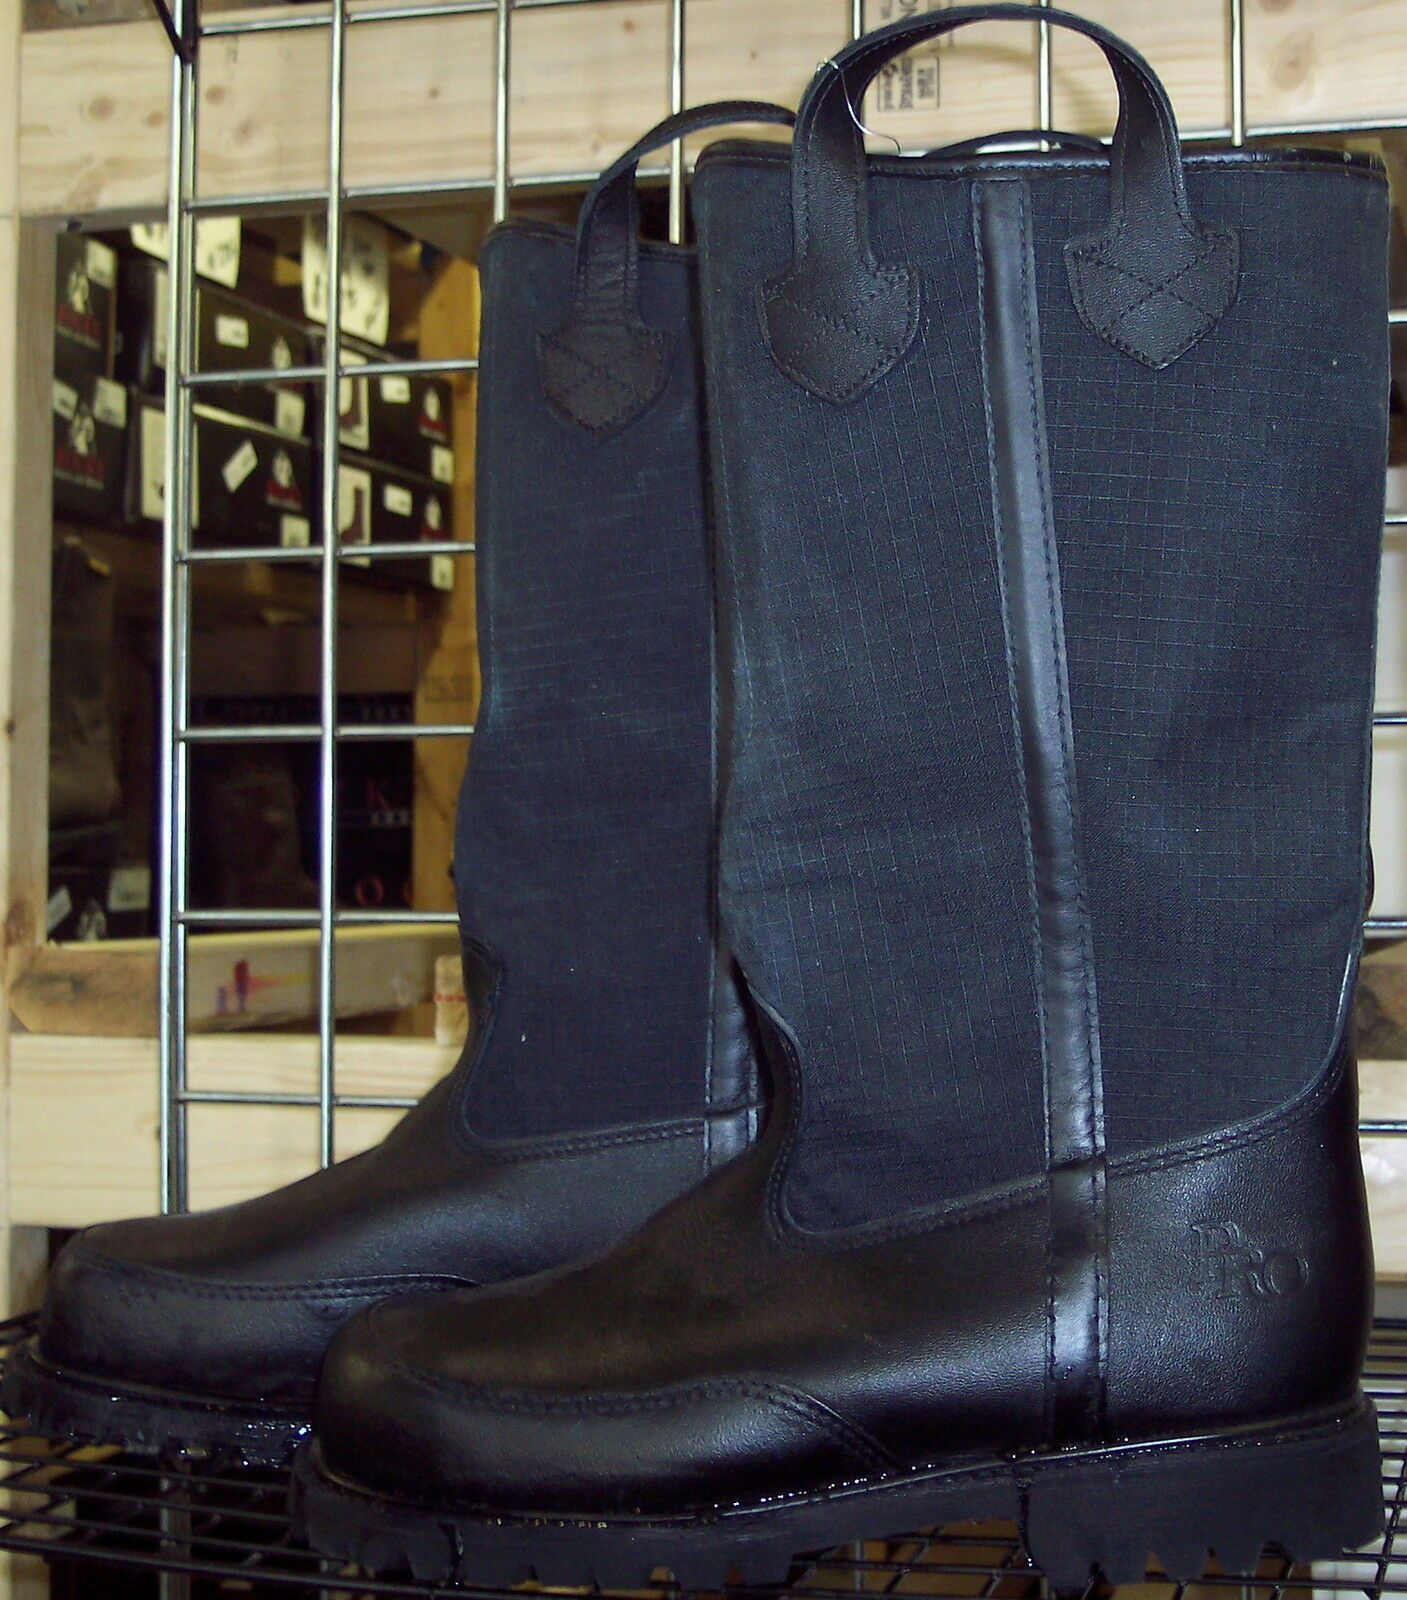 FIREFIGHTER SIZE BOOTS 4132 PRO-WARRINGTON FACTORY SECOND SIZE FIREFIGHTER 10D FREE SHIPPING 0f74e4